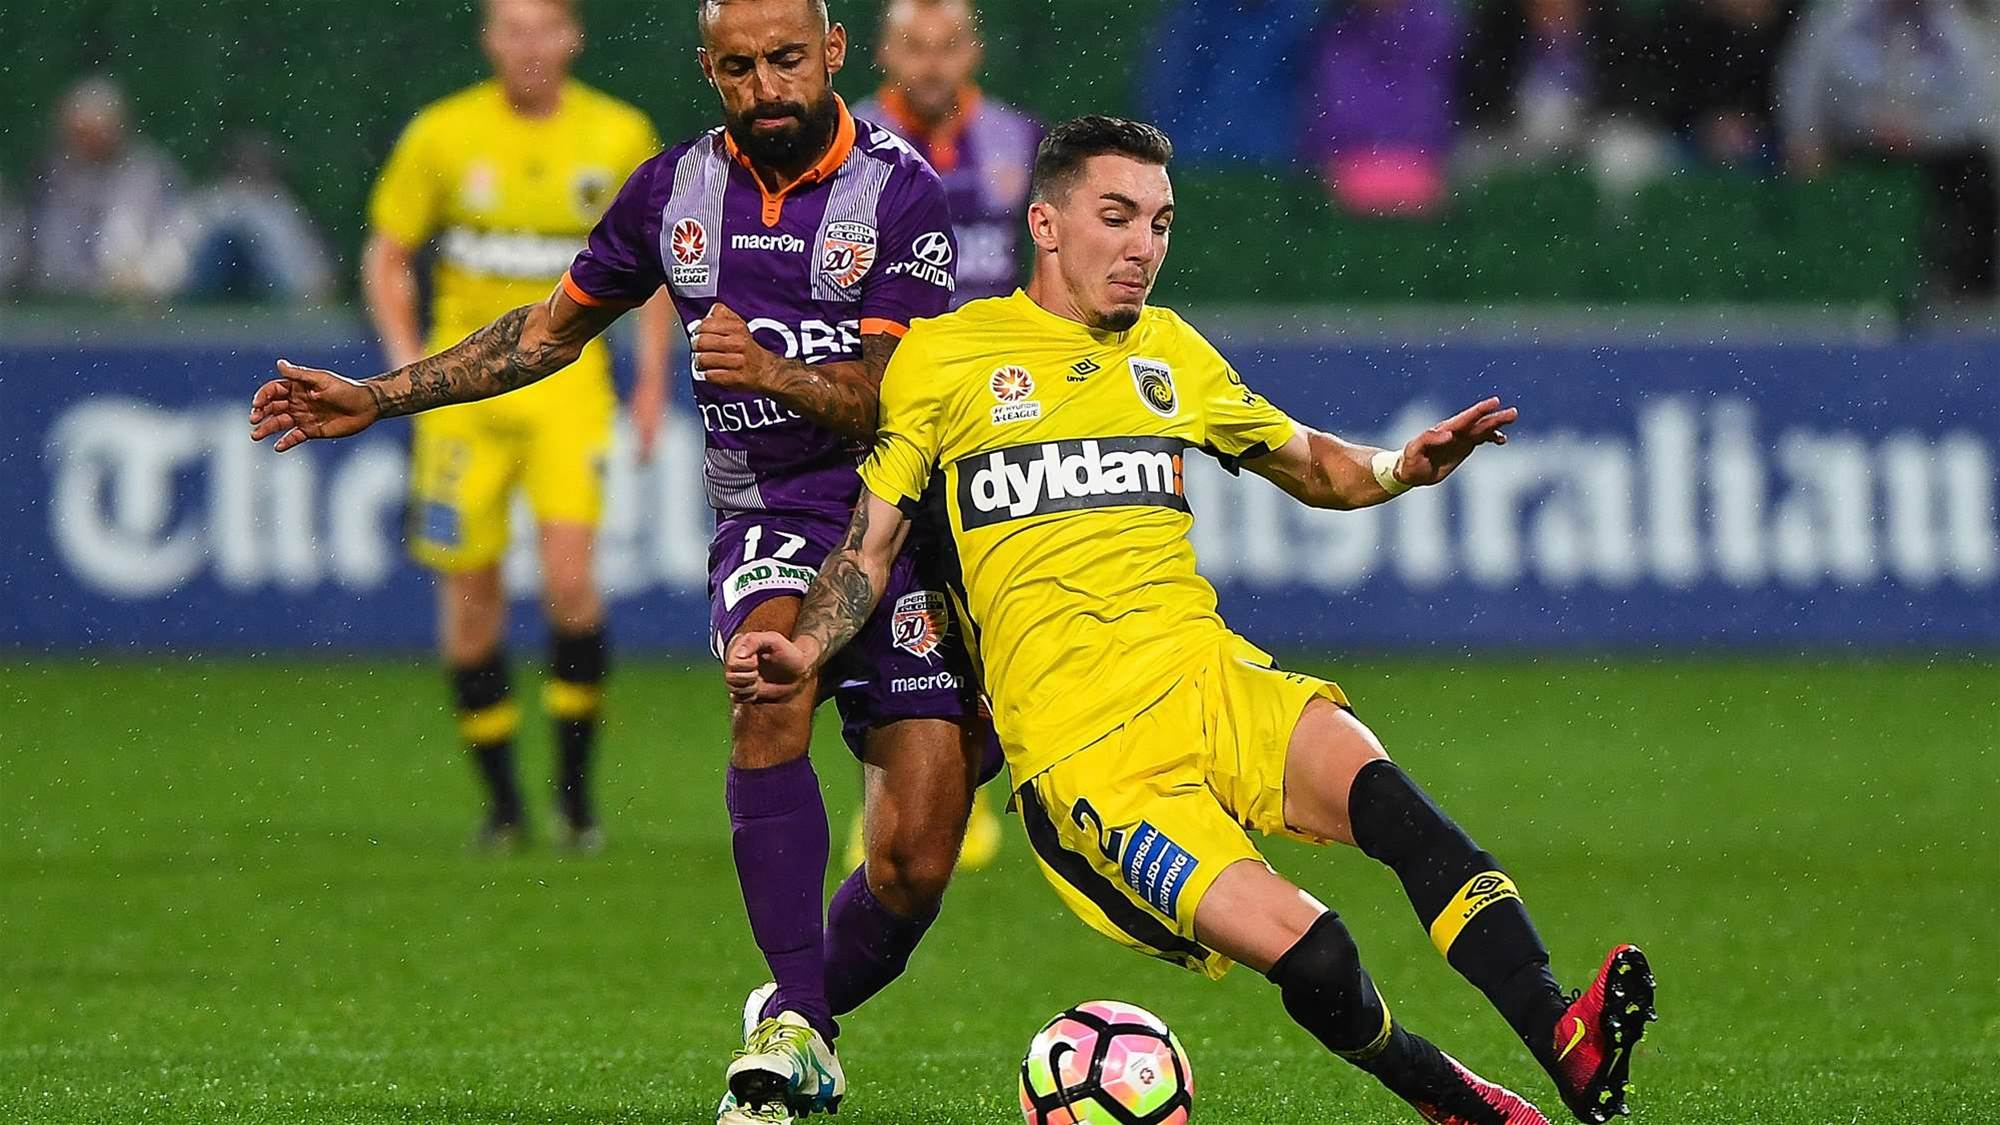 Roux: Honoured to captain Mariners